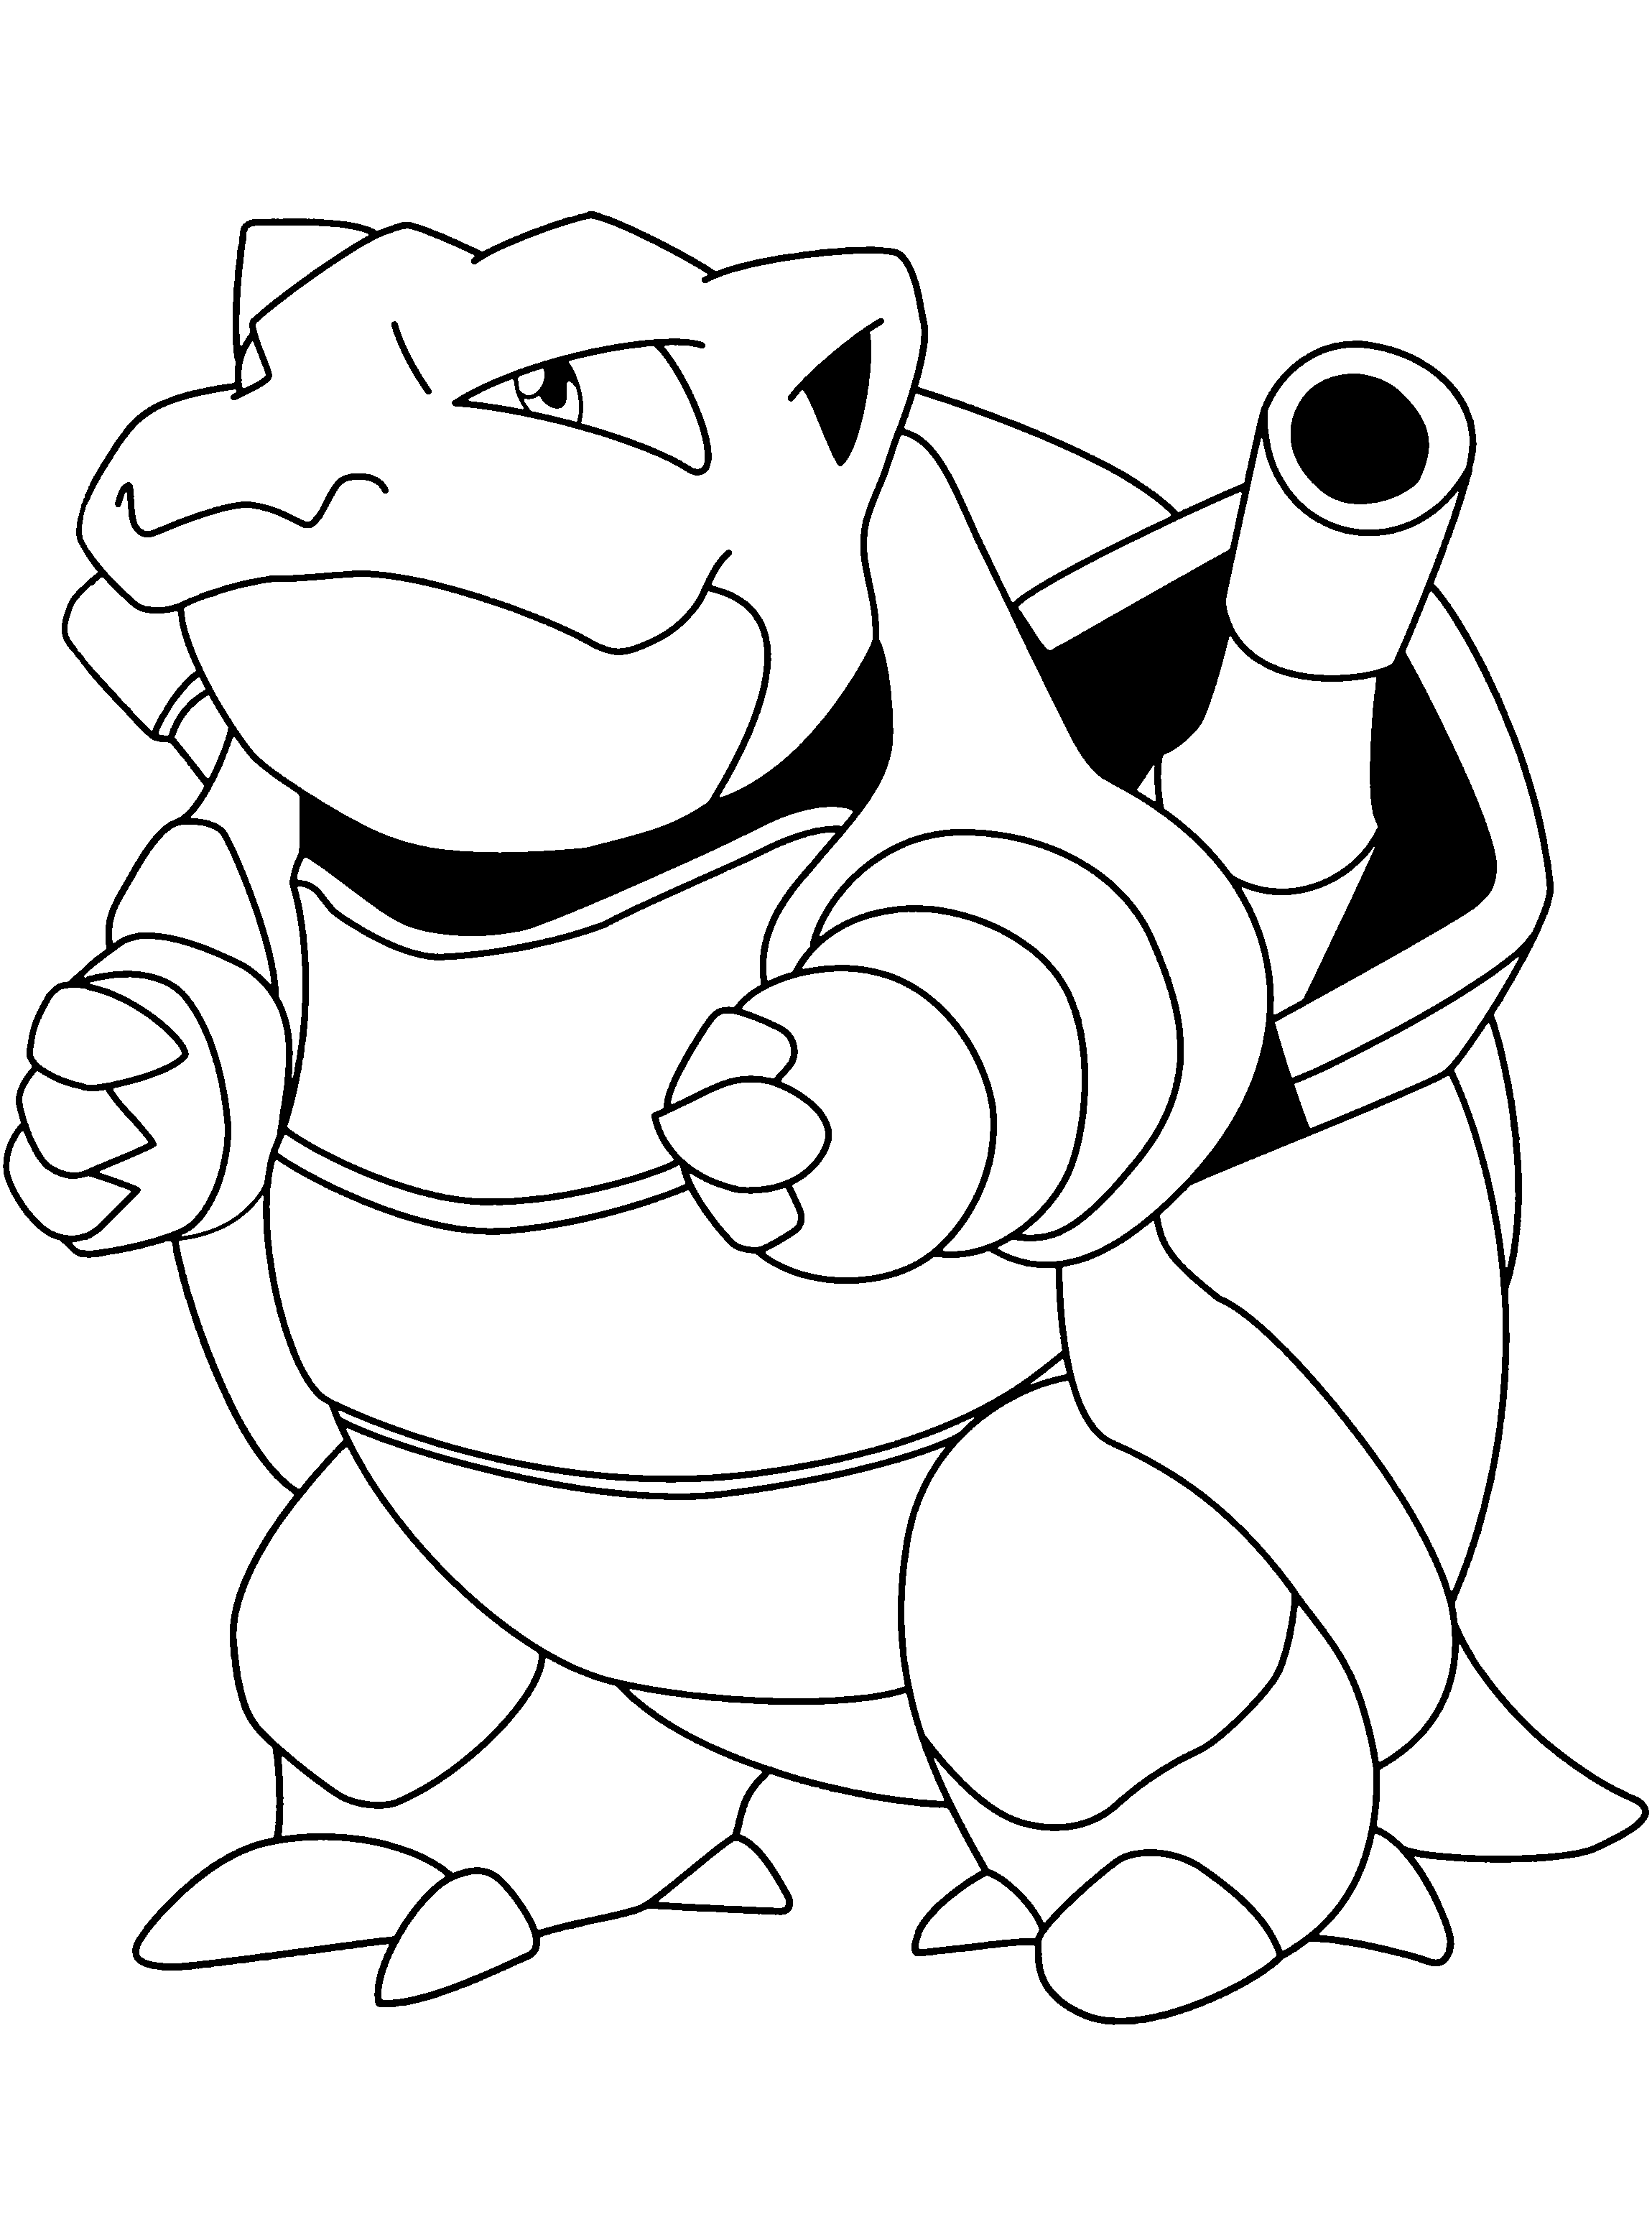 pictures of pokemon coloring pages pokemon coloring pages join your favorite pokemon on an pictures of pages pokemon coloring